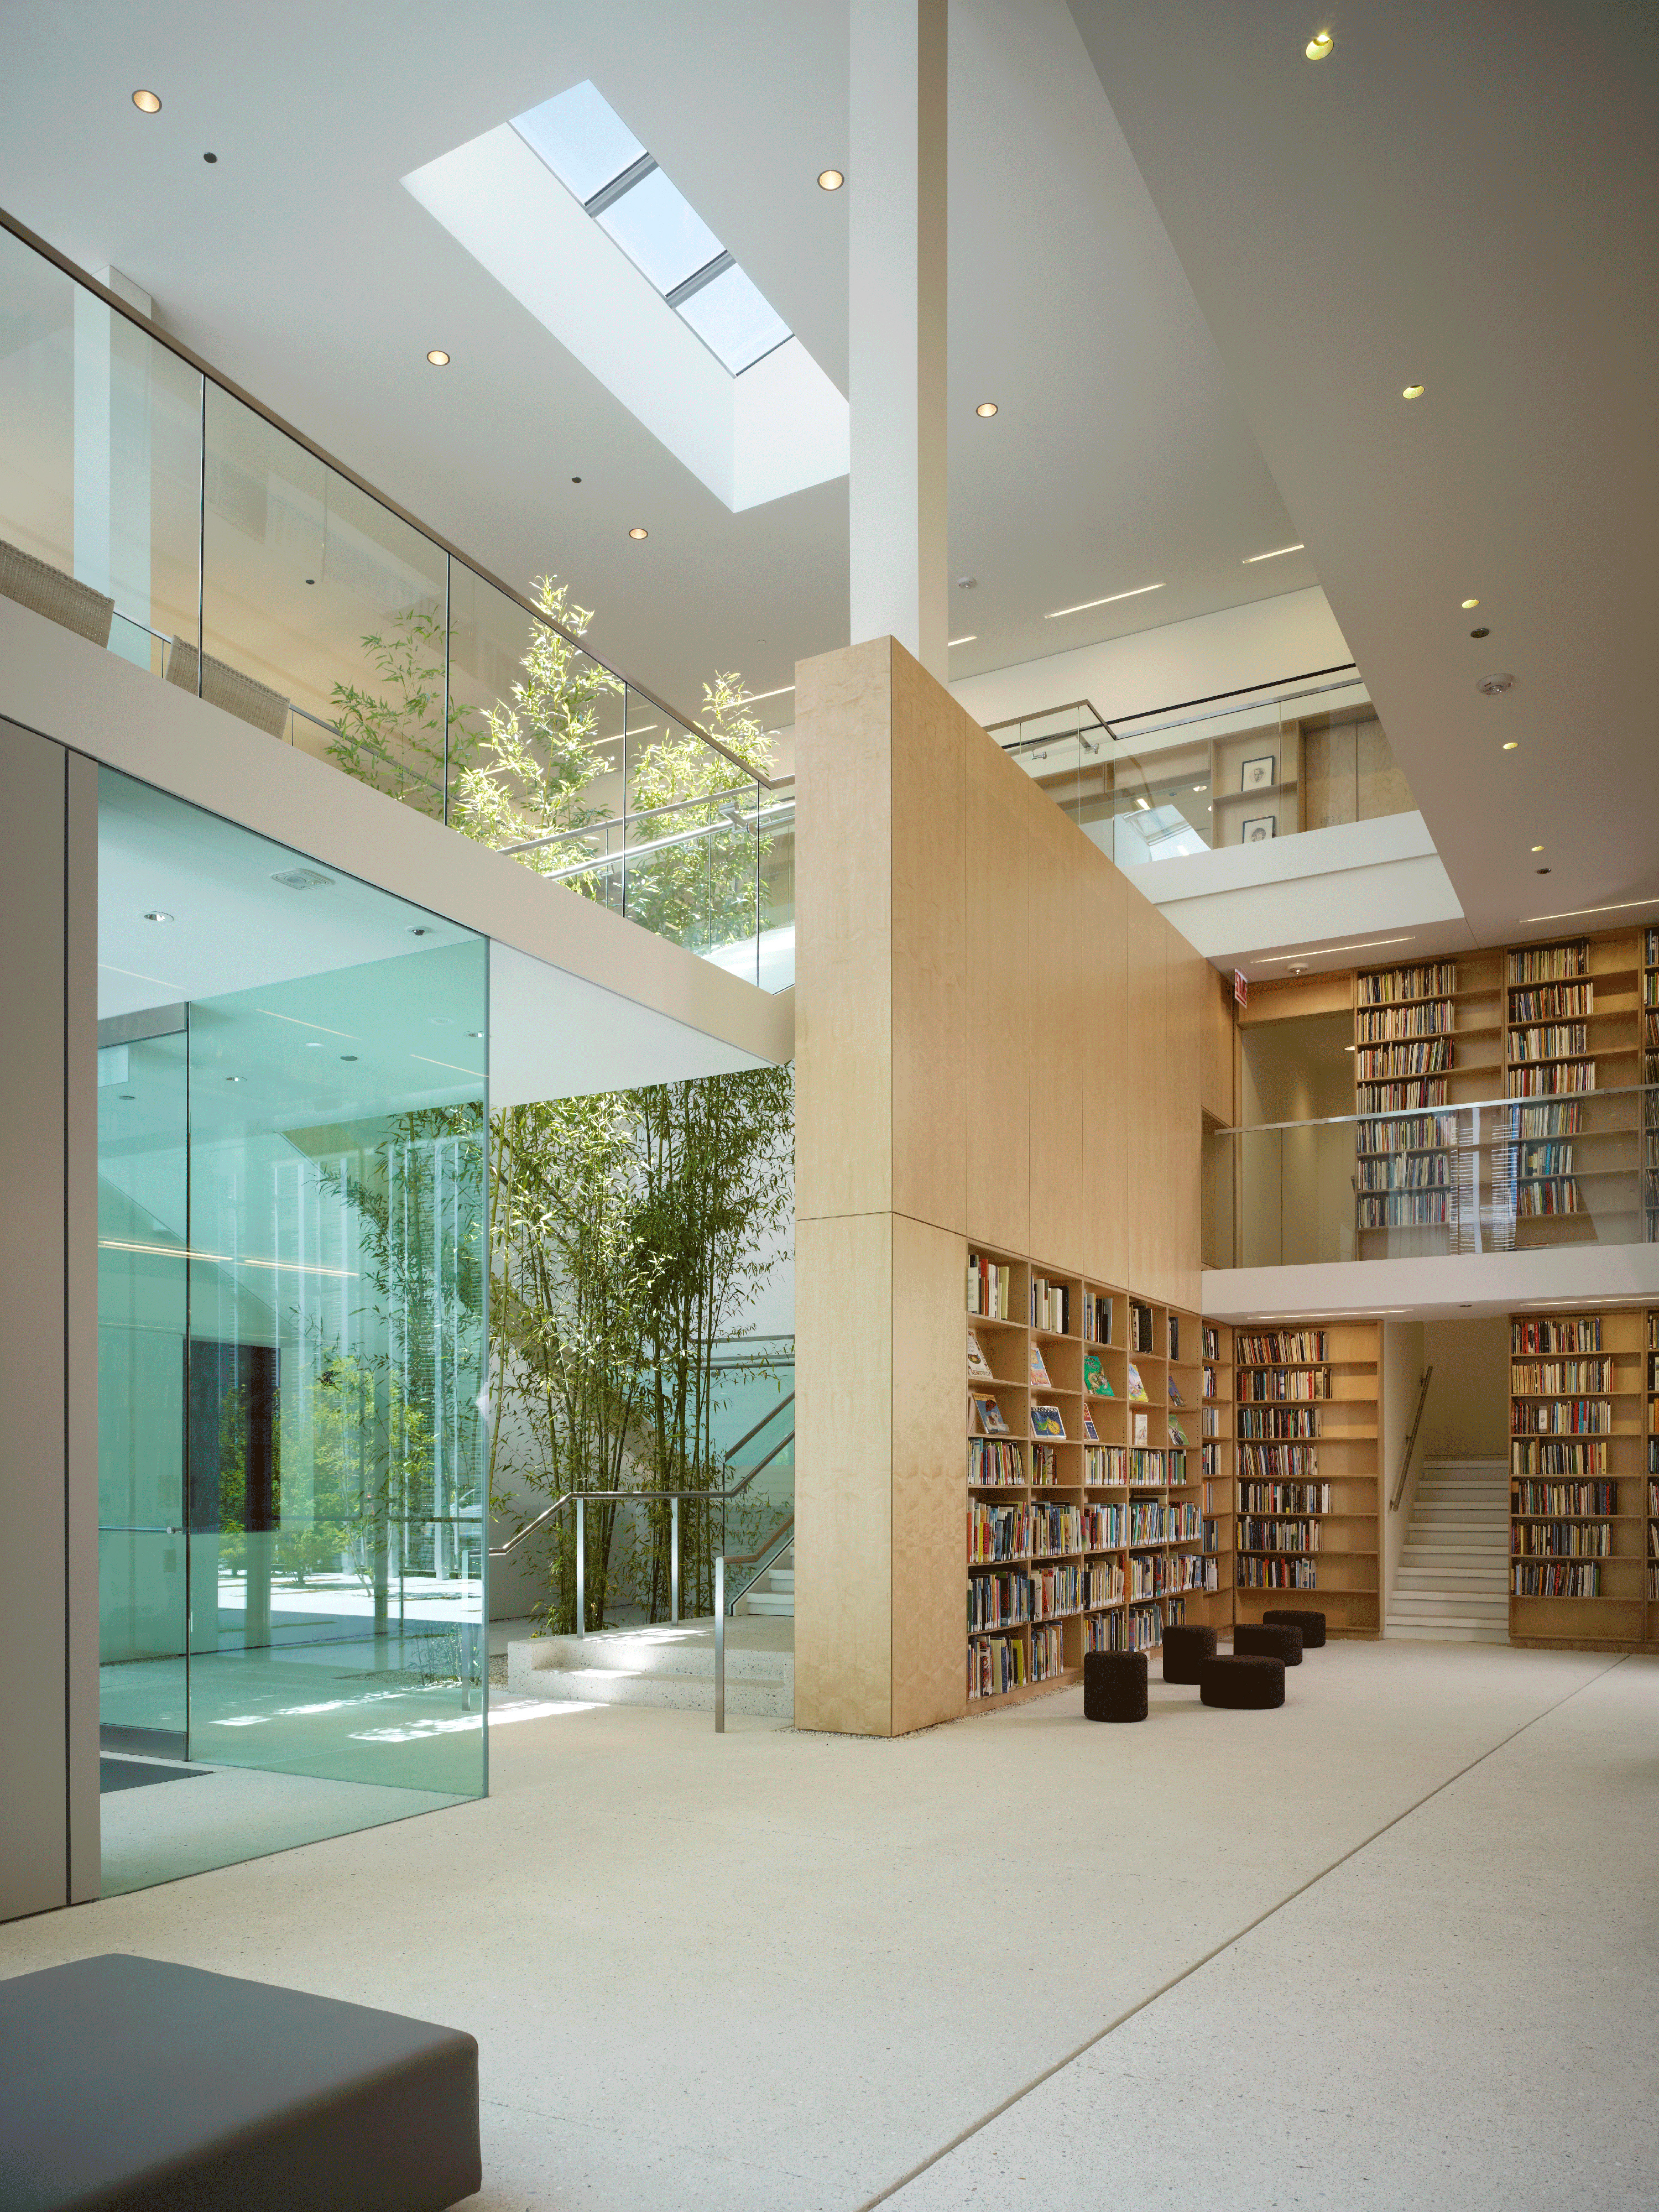 Light-filled atrium with duplex bookshelf, plants and open space